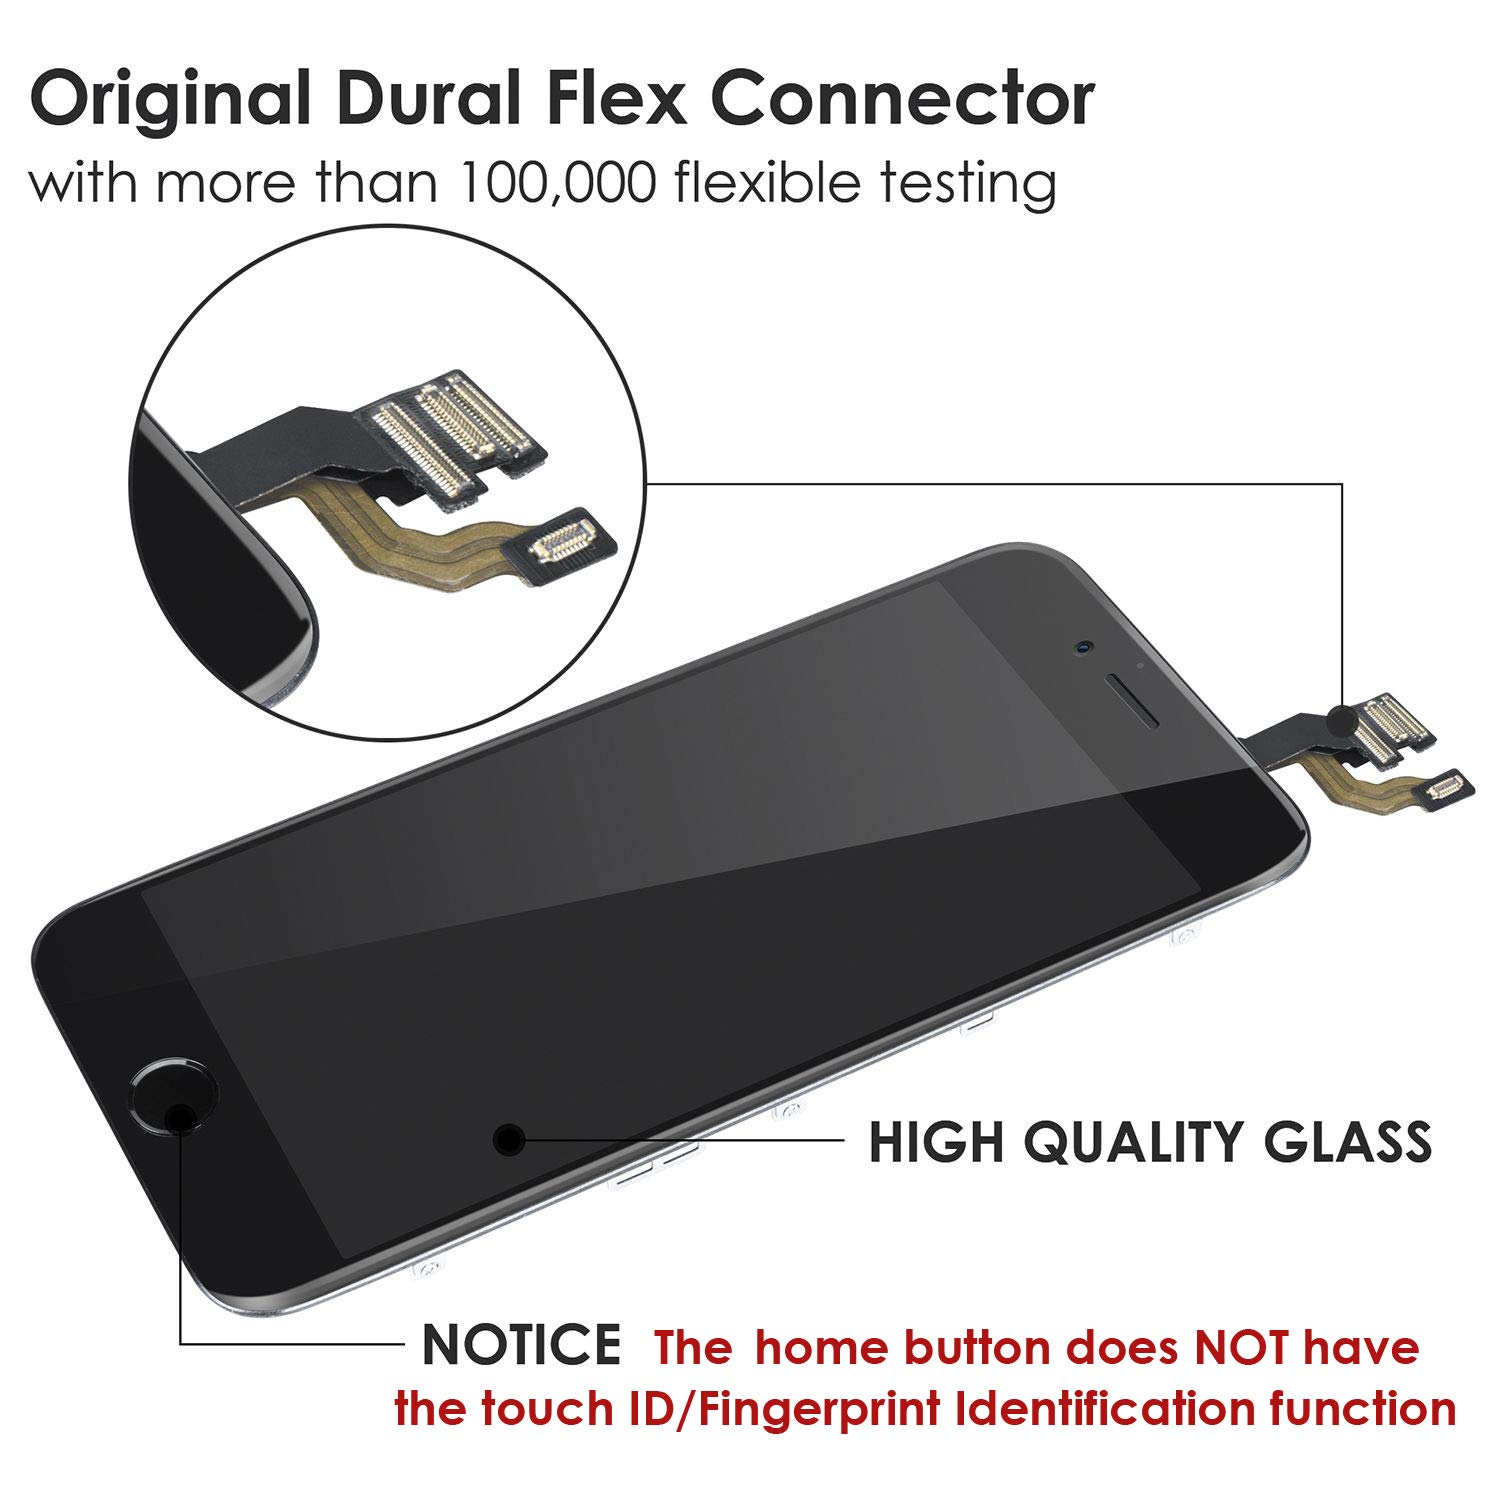 Front Camera Proximity Sensor Earpiece and Screen Protector Screen Replacement for iPhone 6 White 4.7 Inch LCD Display Full Assembly Touch Digitizer A1586 A1549 A1589 with Home Button